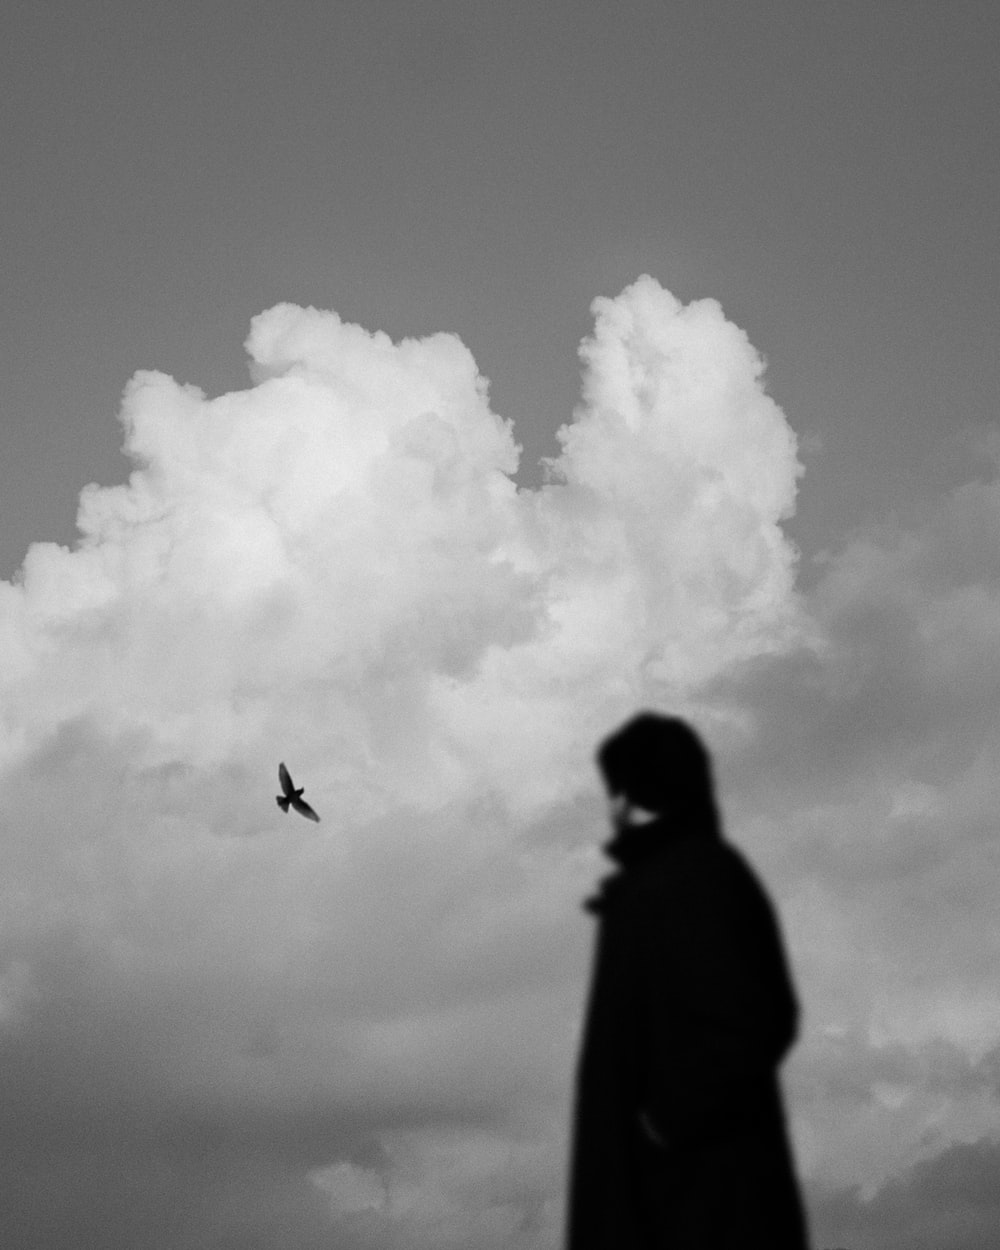 grayscale photography of silhouette of a person and a bird